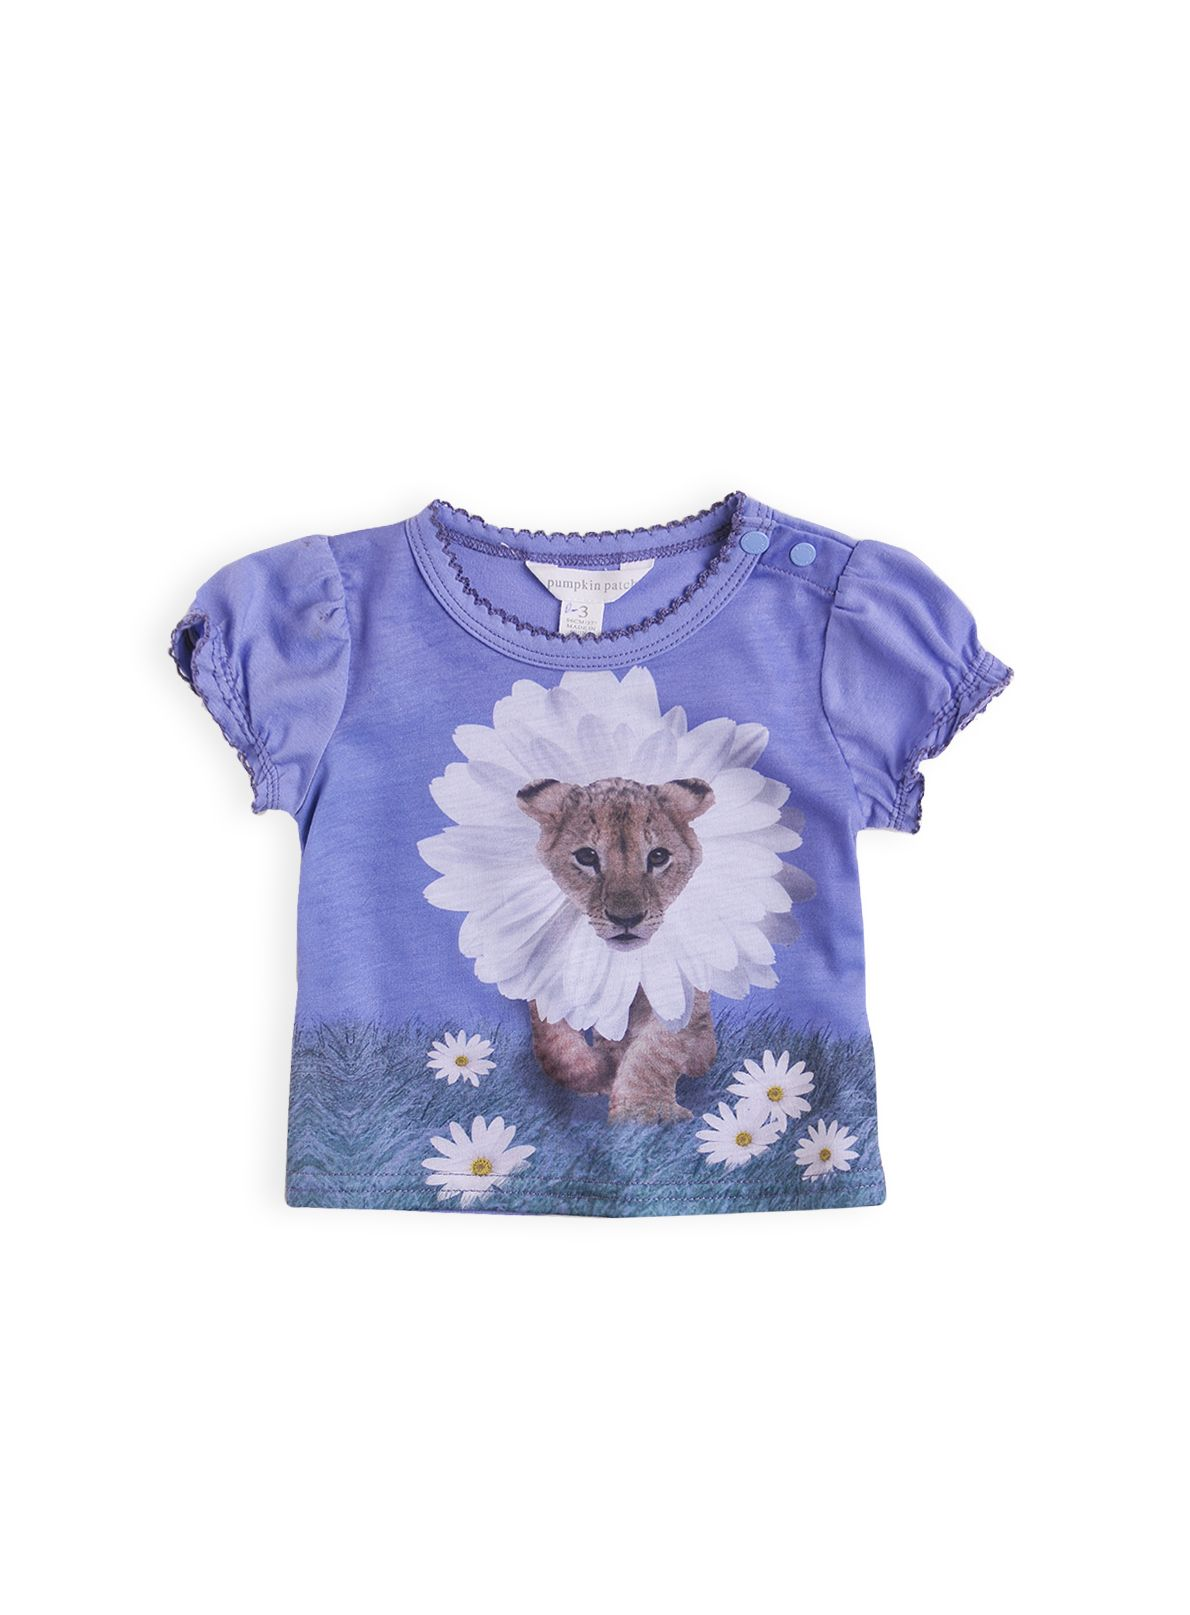 Girls cub t-shirt